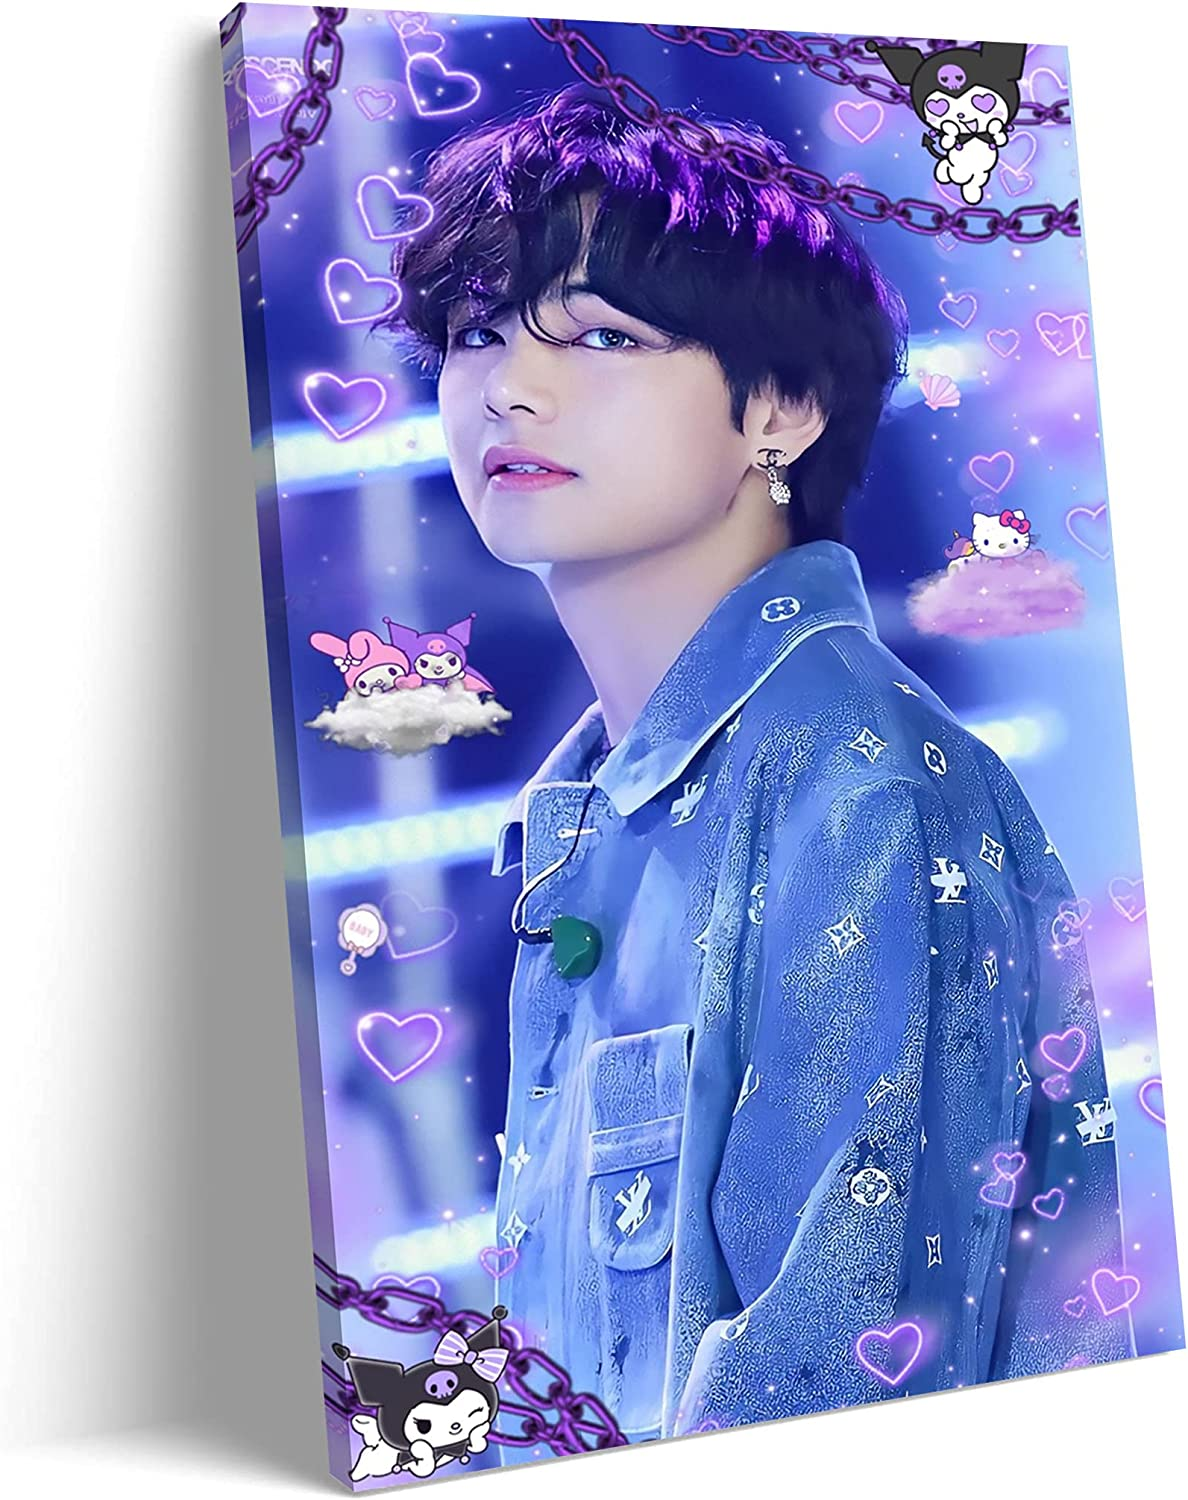 BTS Poster for Room Bedroom t Gift-Xirokey-Easy Decorative Now on sale Atlanta Mall Walls